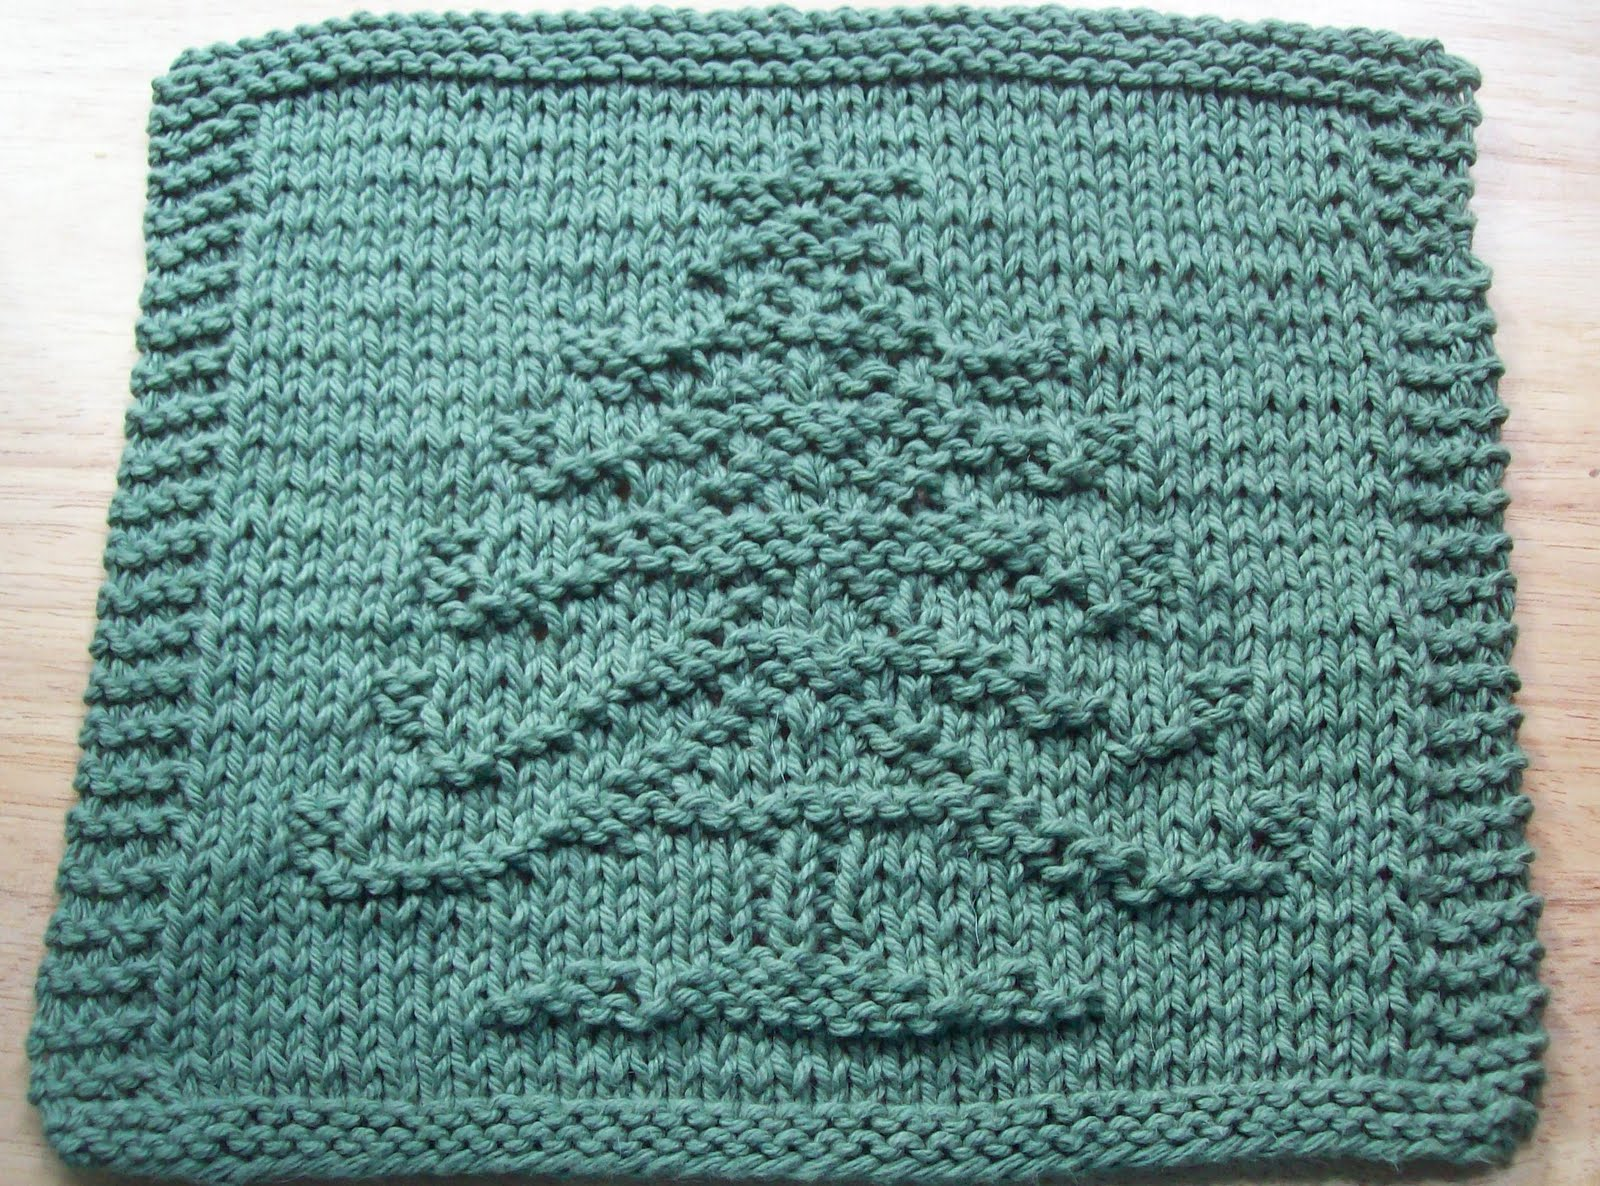 DigKnitty Designs: Another Christmas Tree Knit Dishcloth Pattern